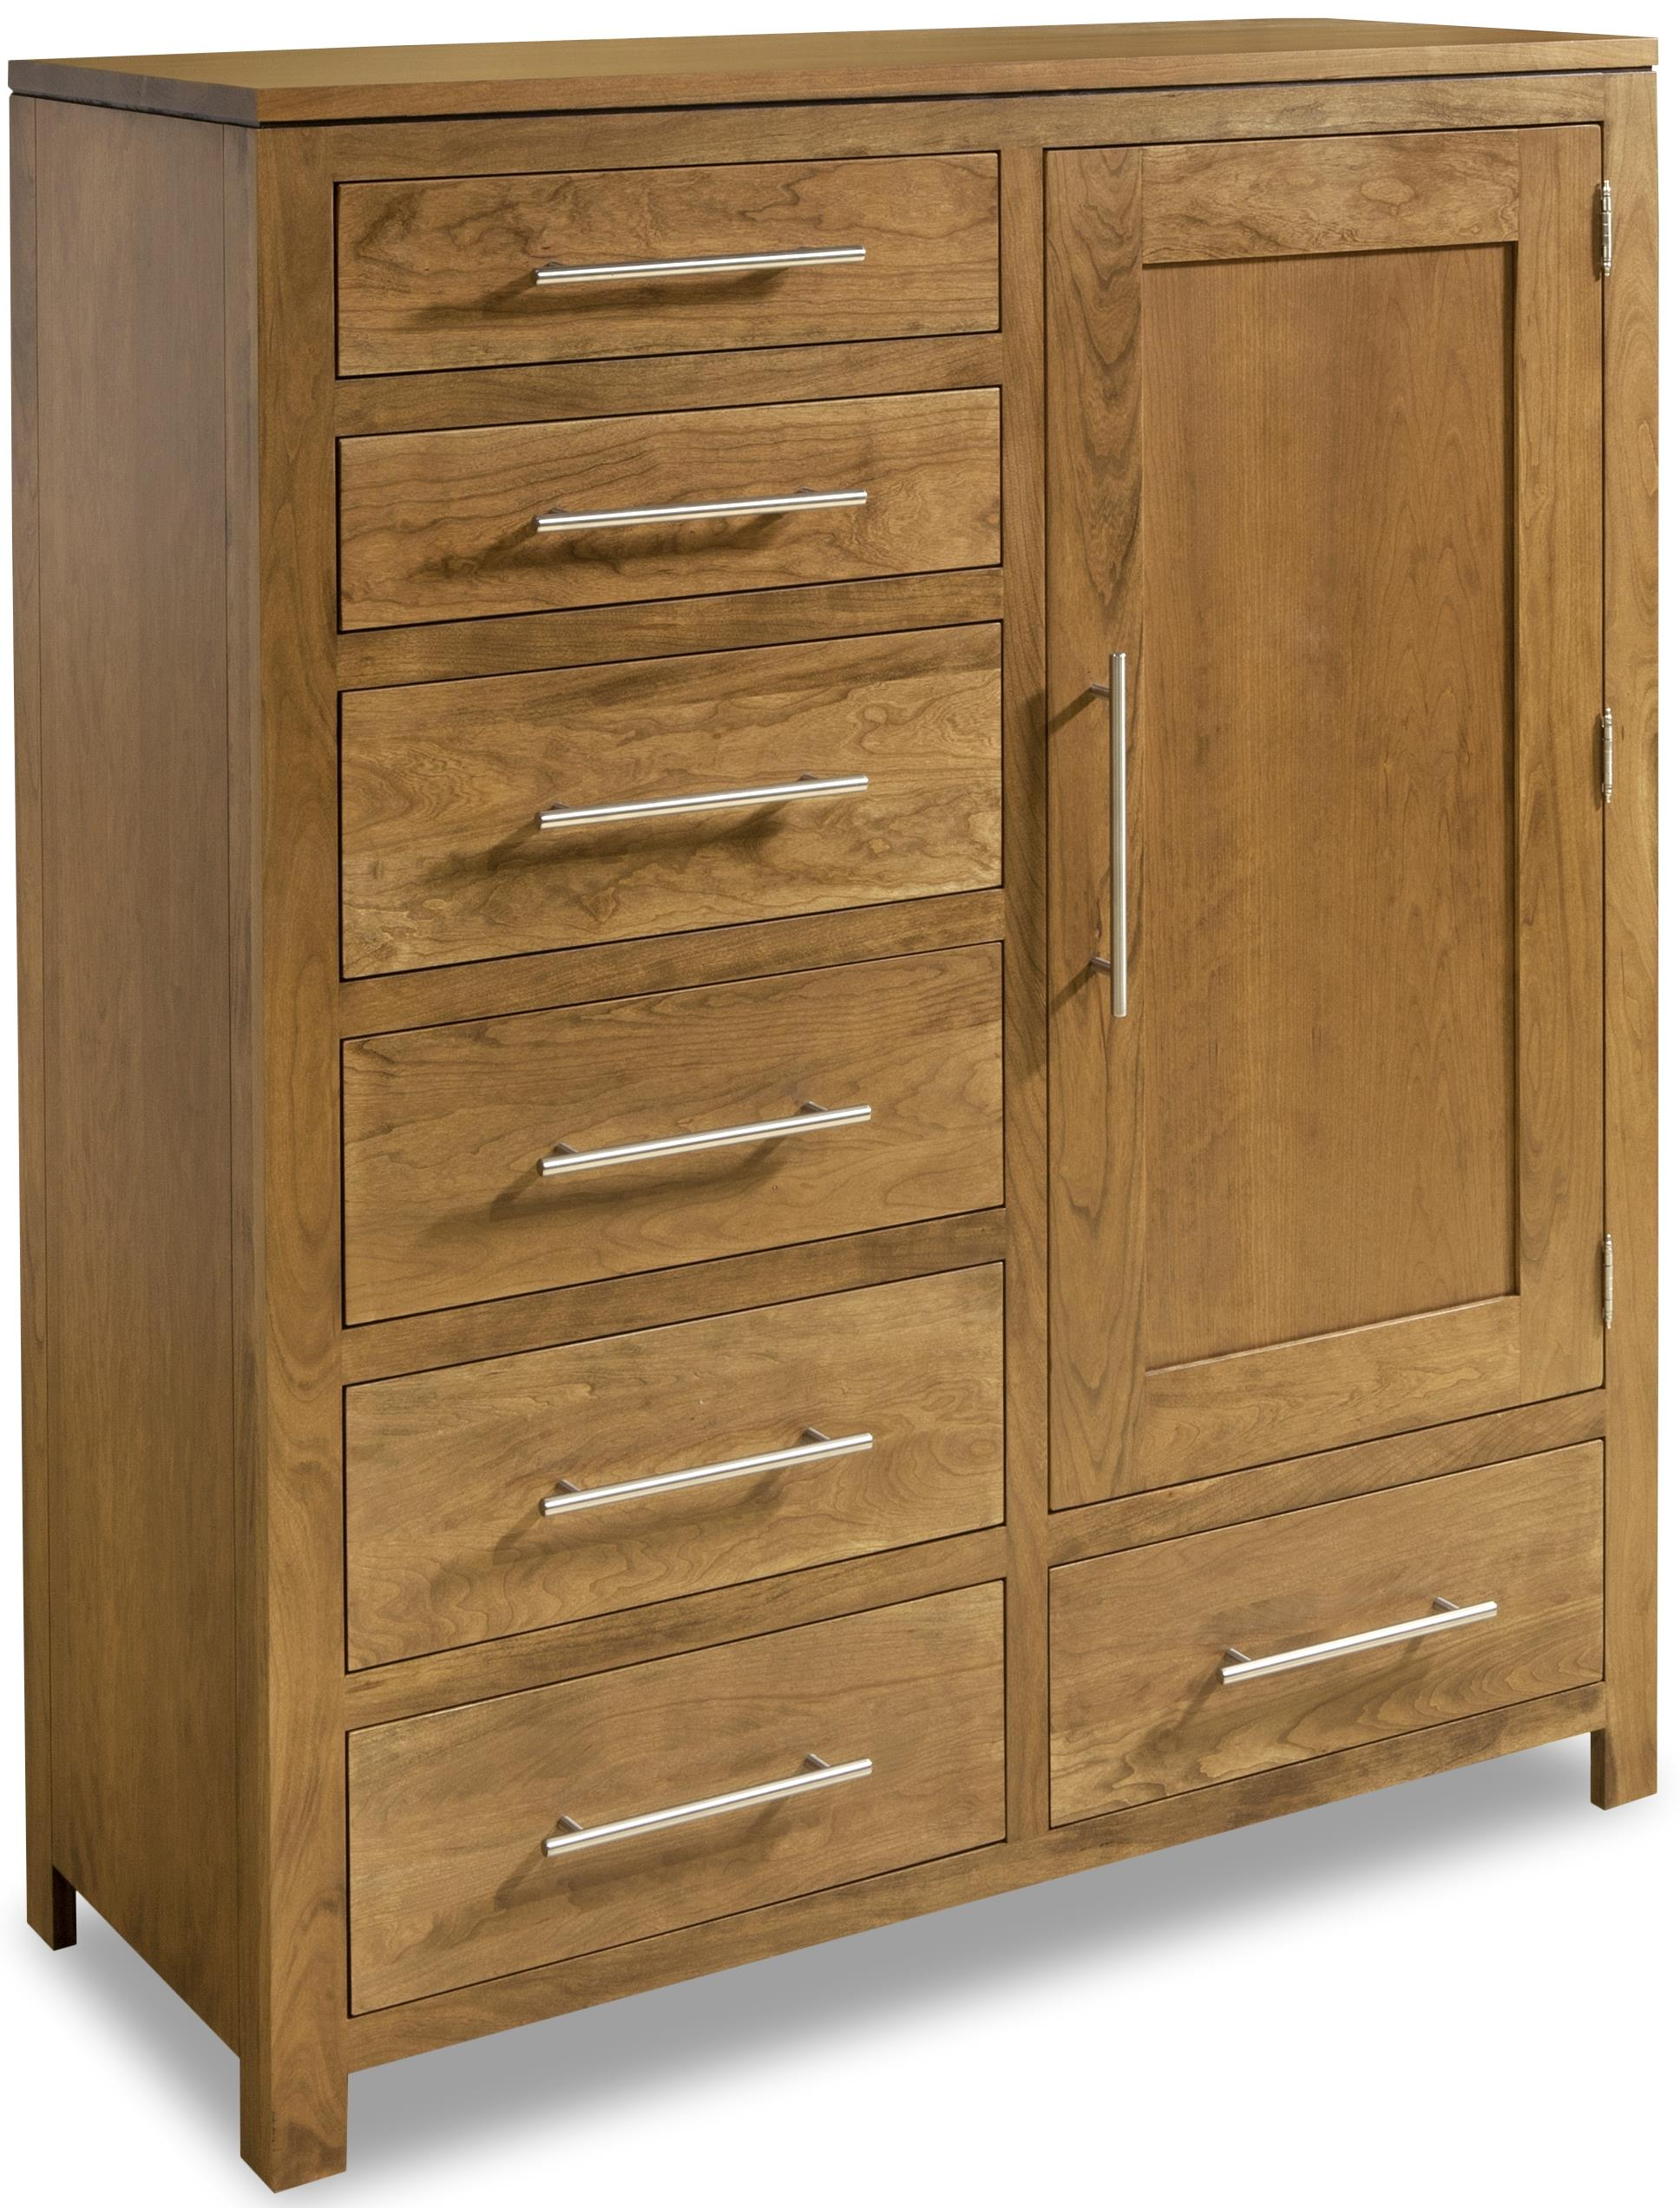 Modern Bachelor's Chest by Daniels Amish at Virginia Furniture Market